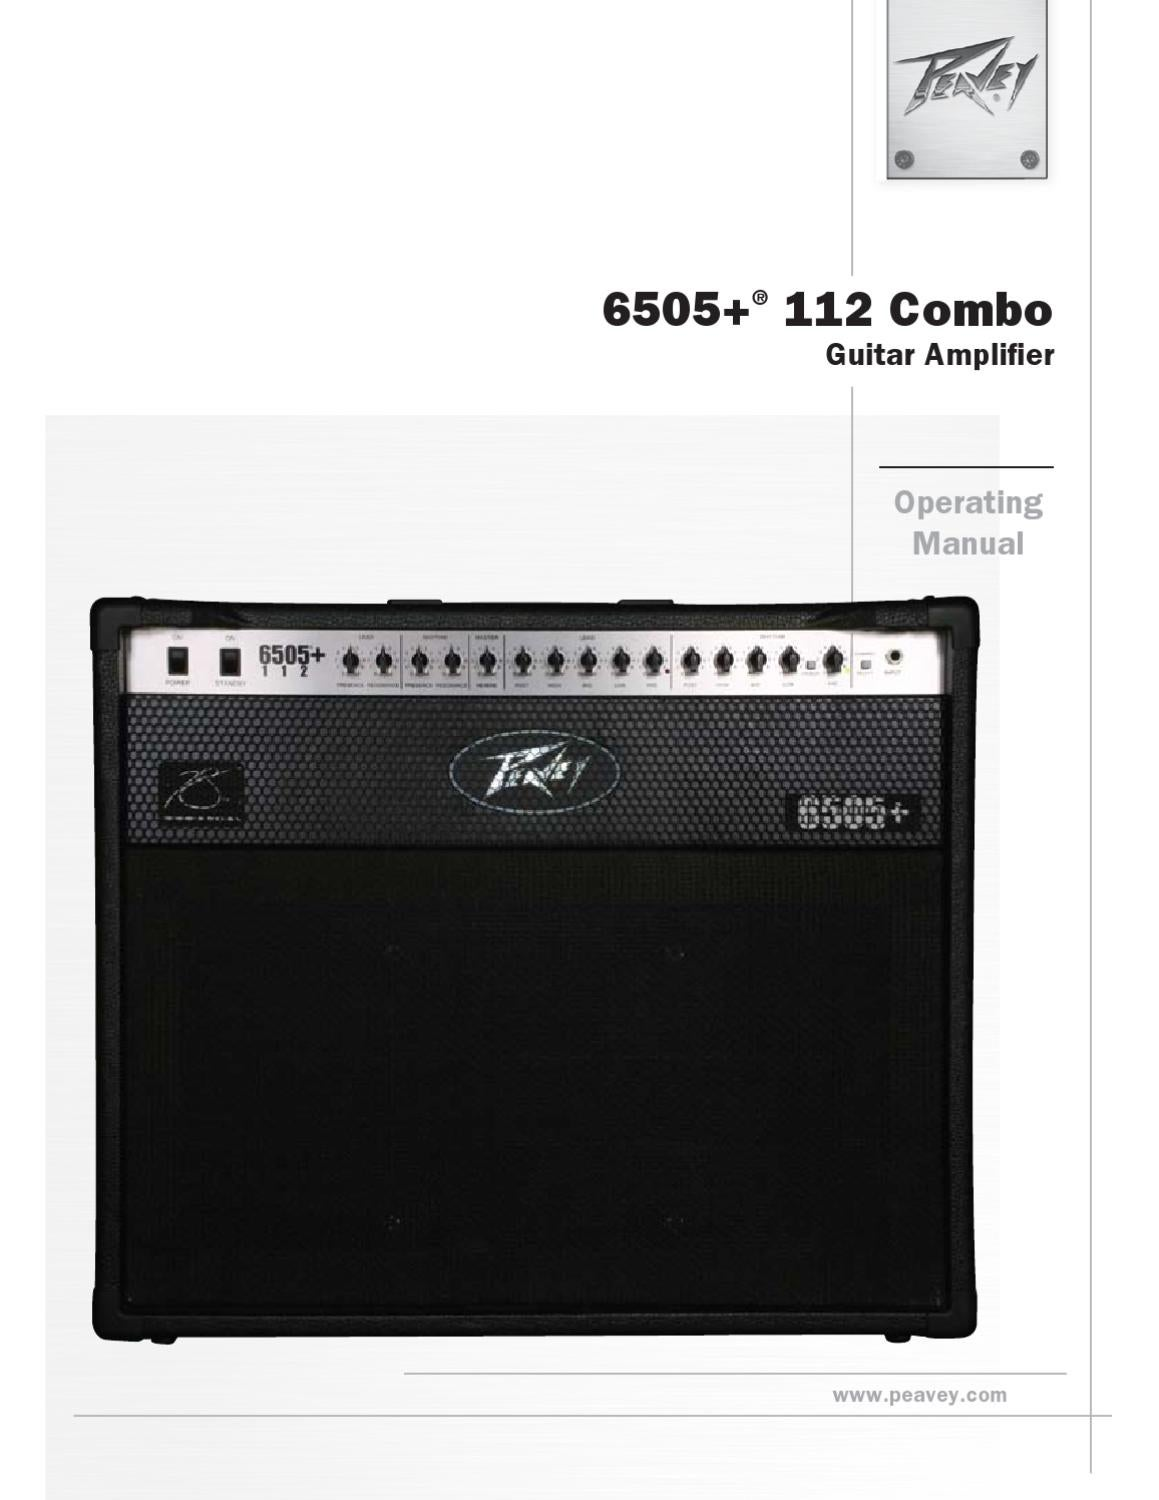 Combo a Valvulas PEAVEY 6505 Plus 112 - Manual Sonigate by ...